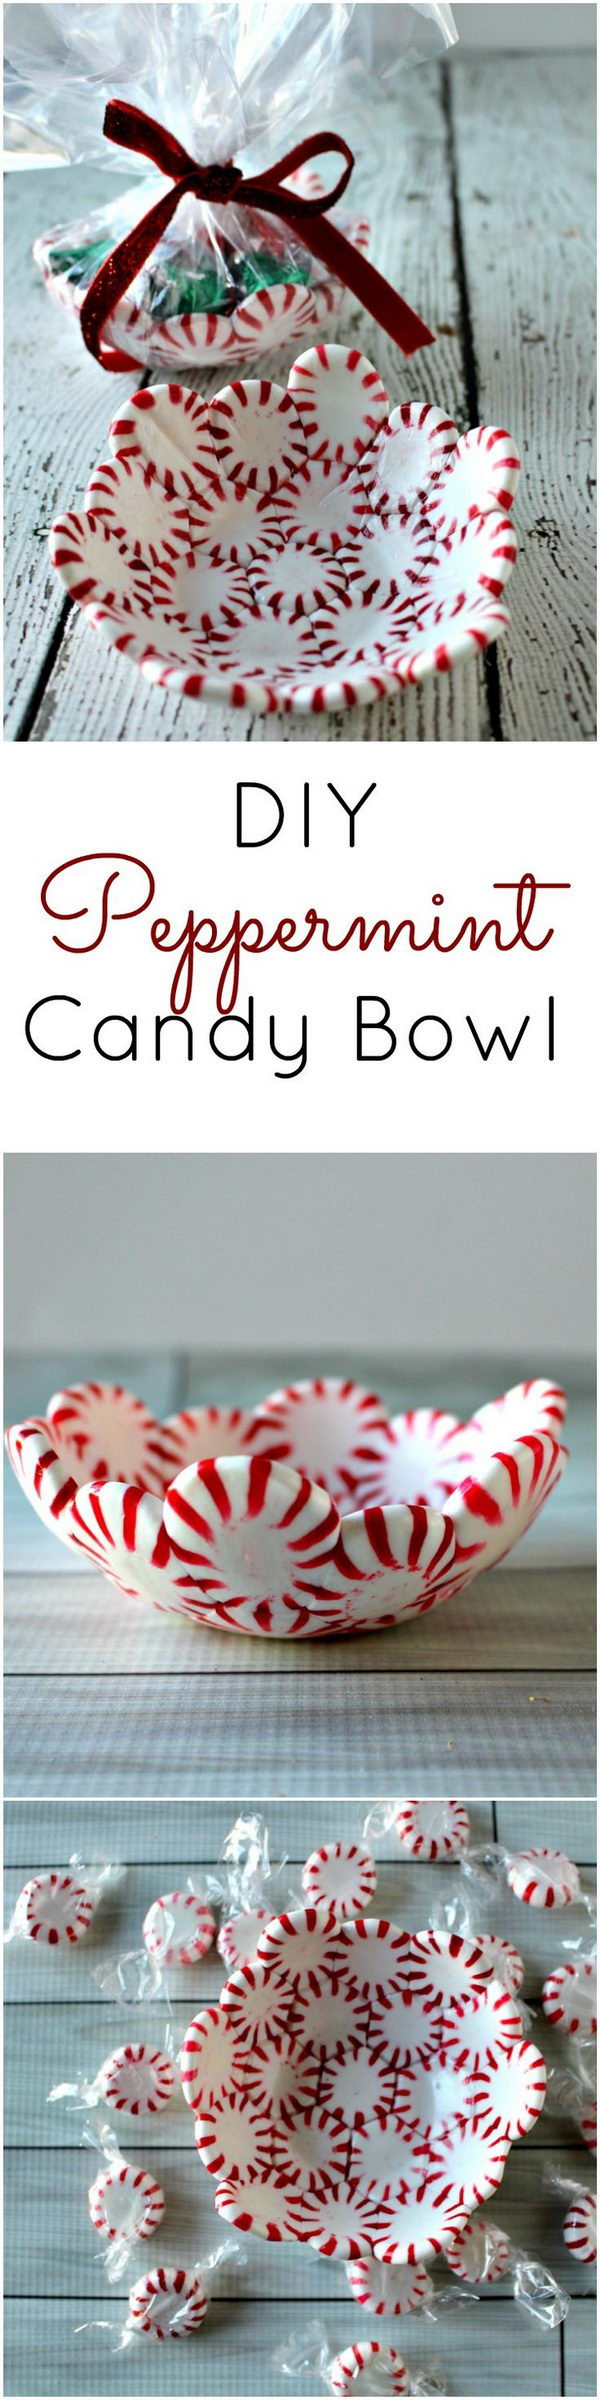 Peppermint Candy Bowl.